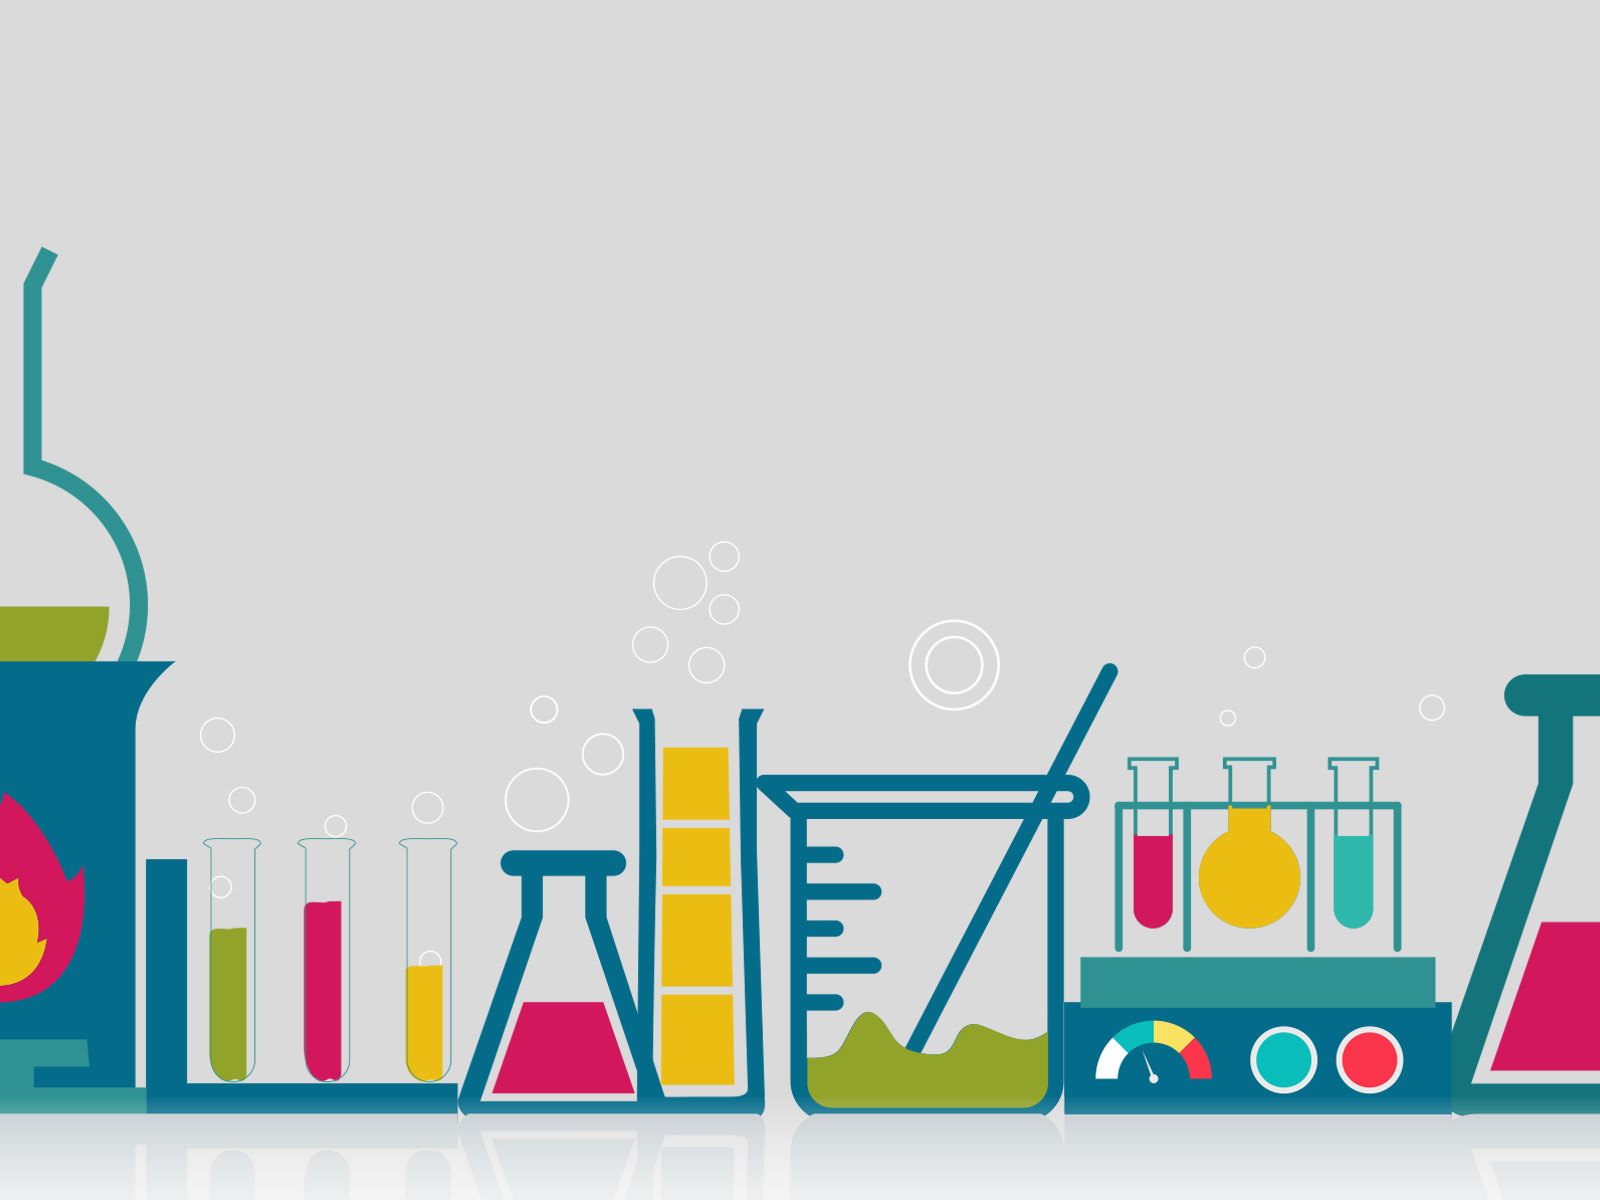 Chemistry Lesson Powerpoint Templates Healthcare Medical Free Ppt Backgrounds And Templates